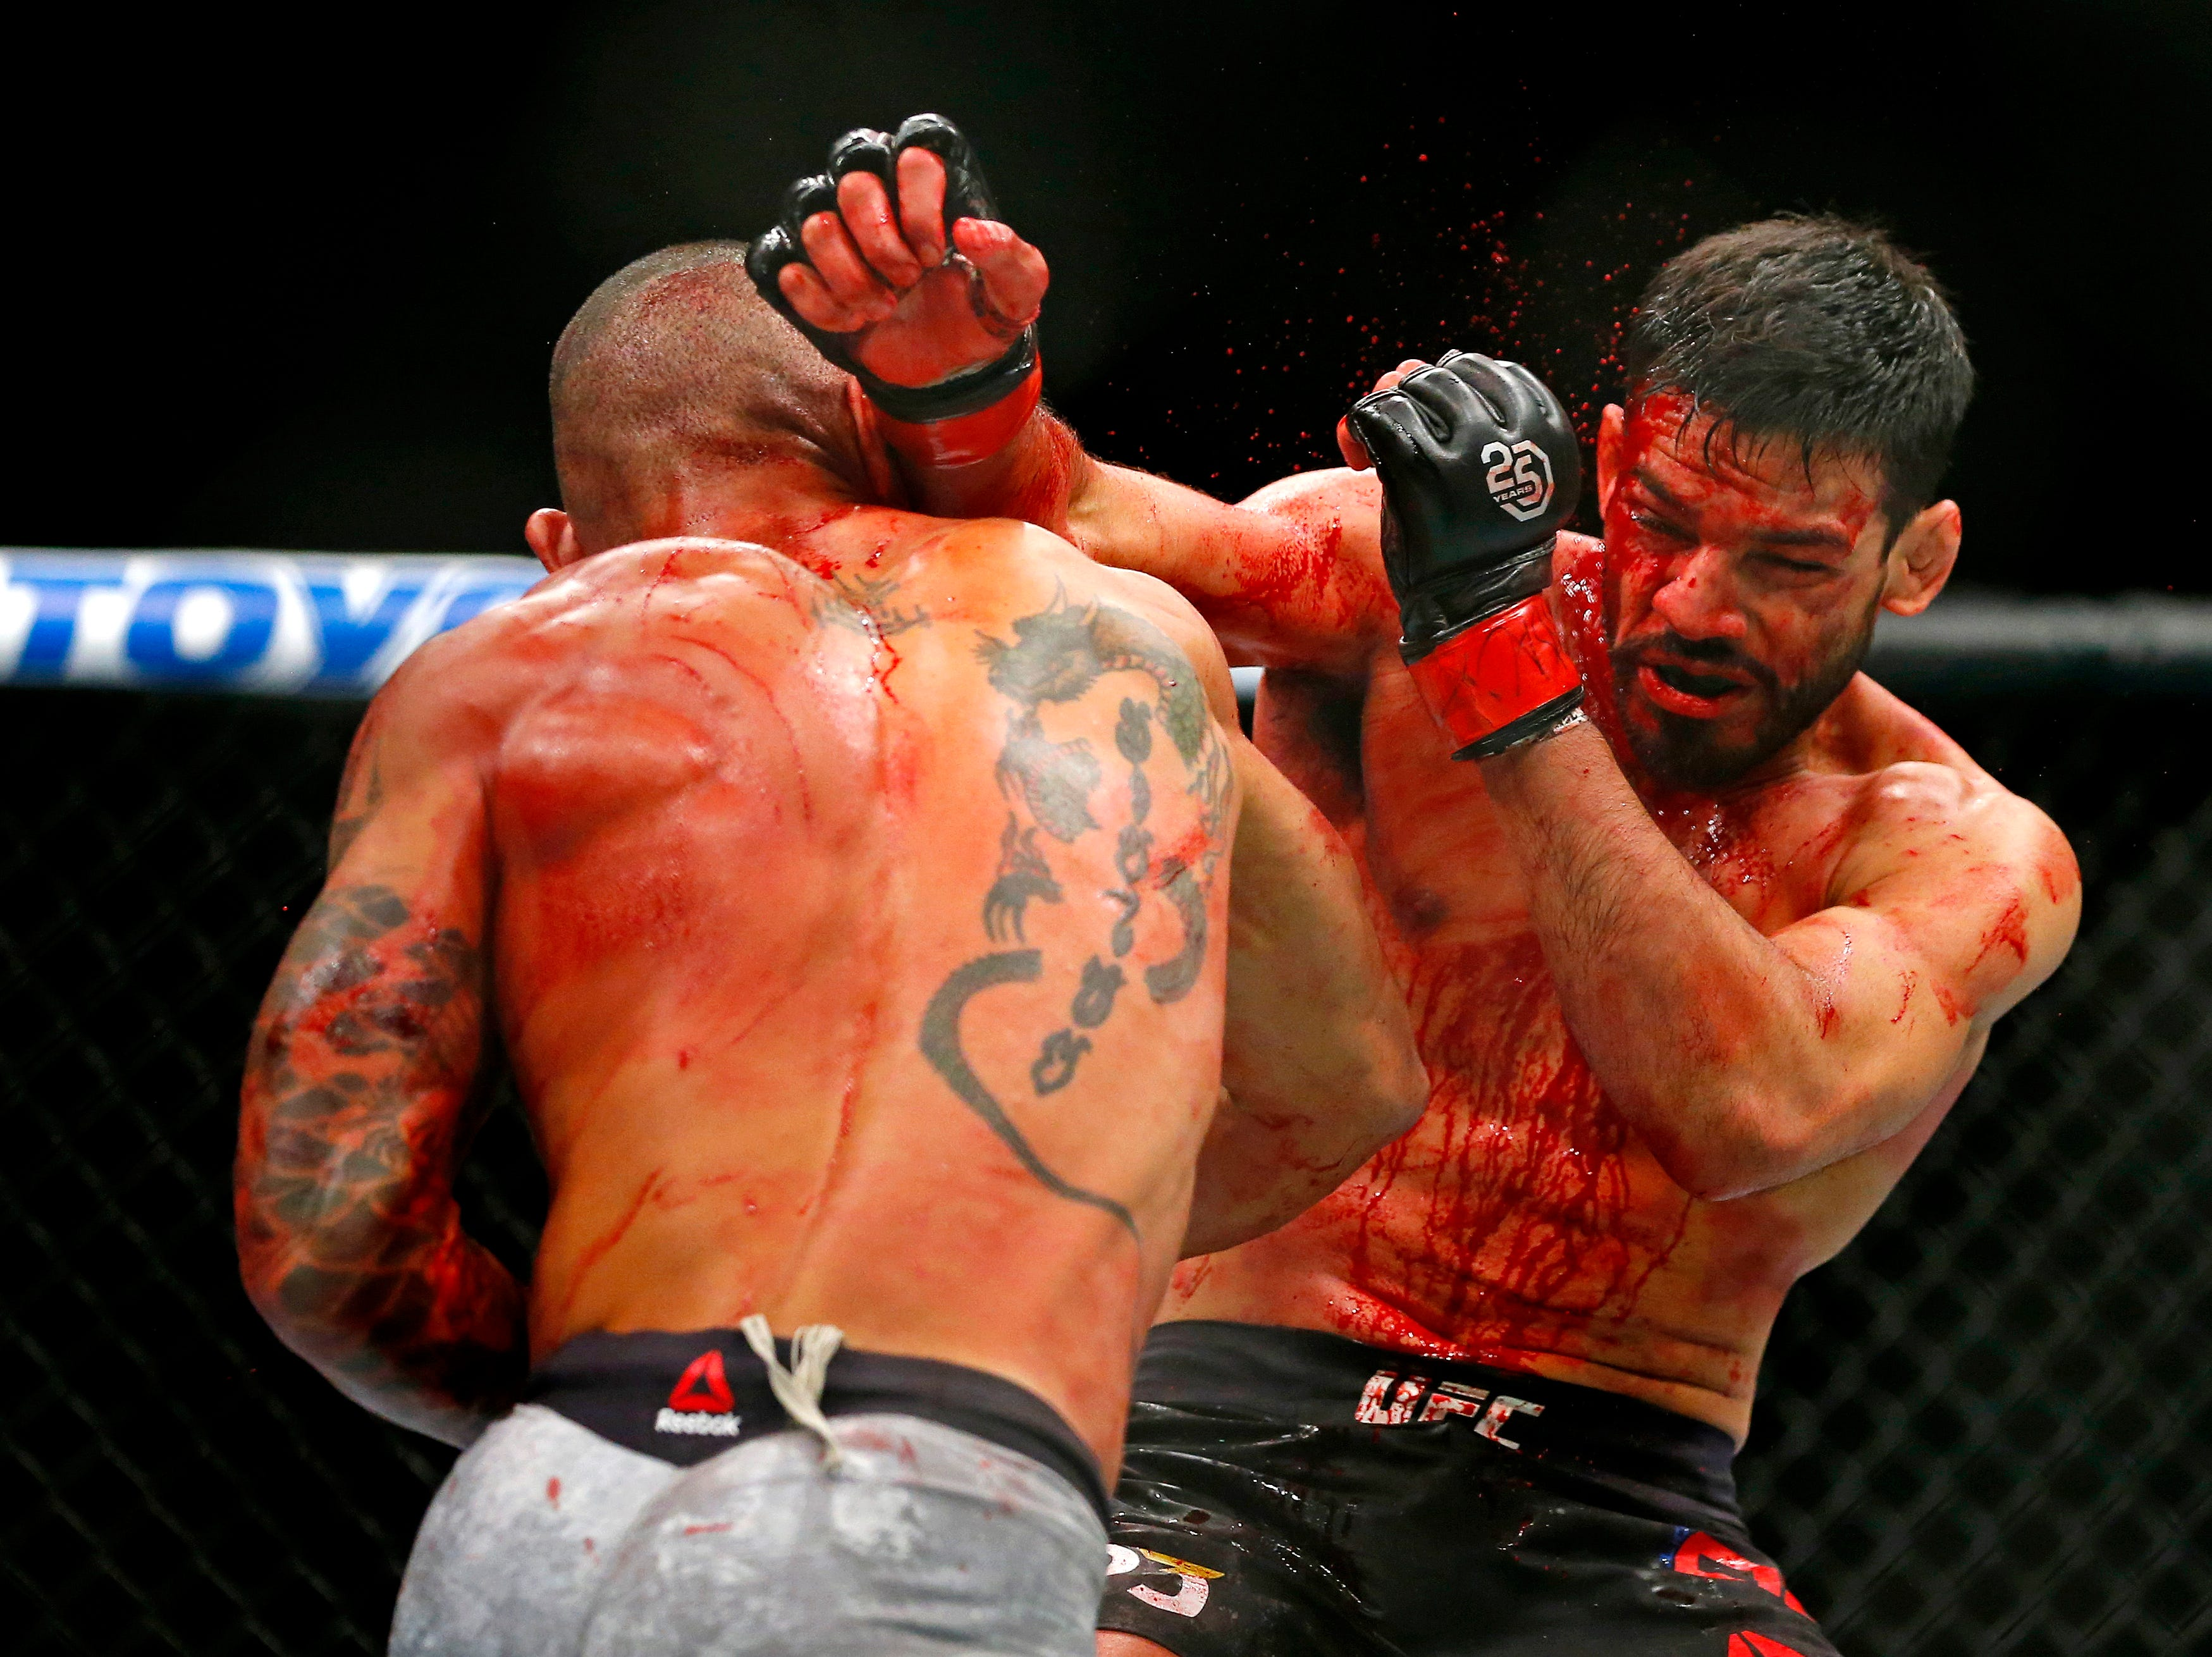 Julio Arce (red gloves) fights Sheymon Moreas (blue gloves) during UFC 230 at Madison Square Garden.